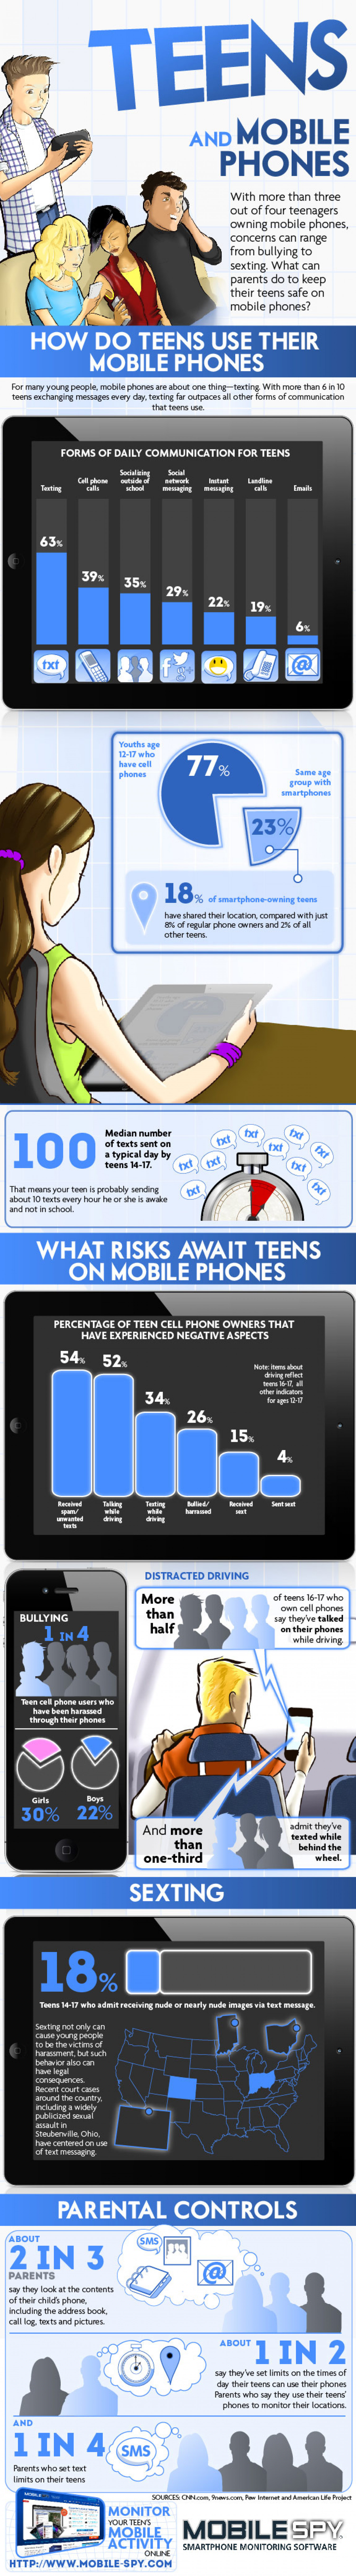 iphone Spy Software Infographic